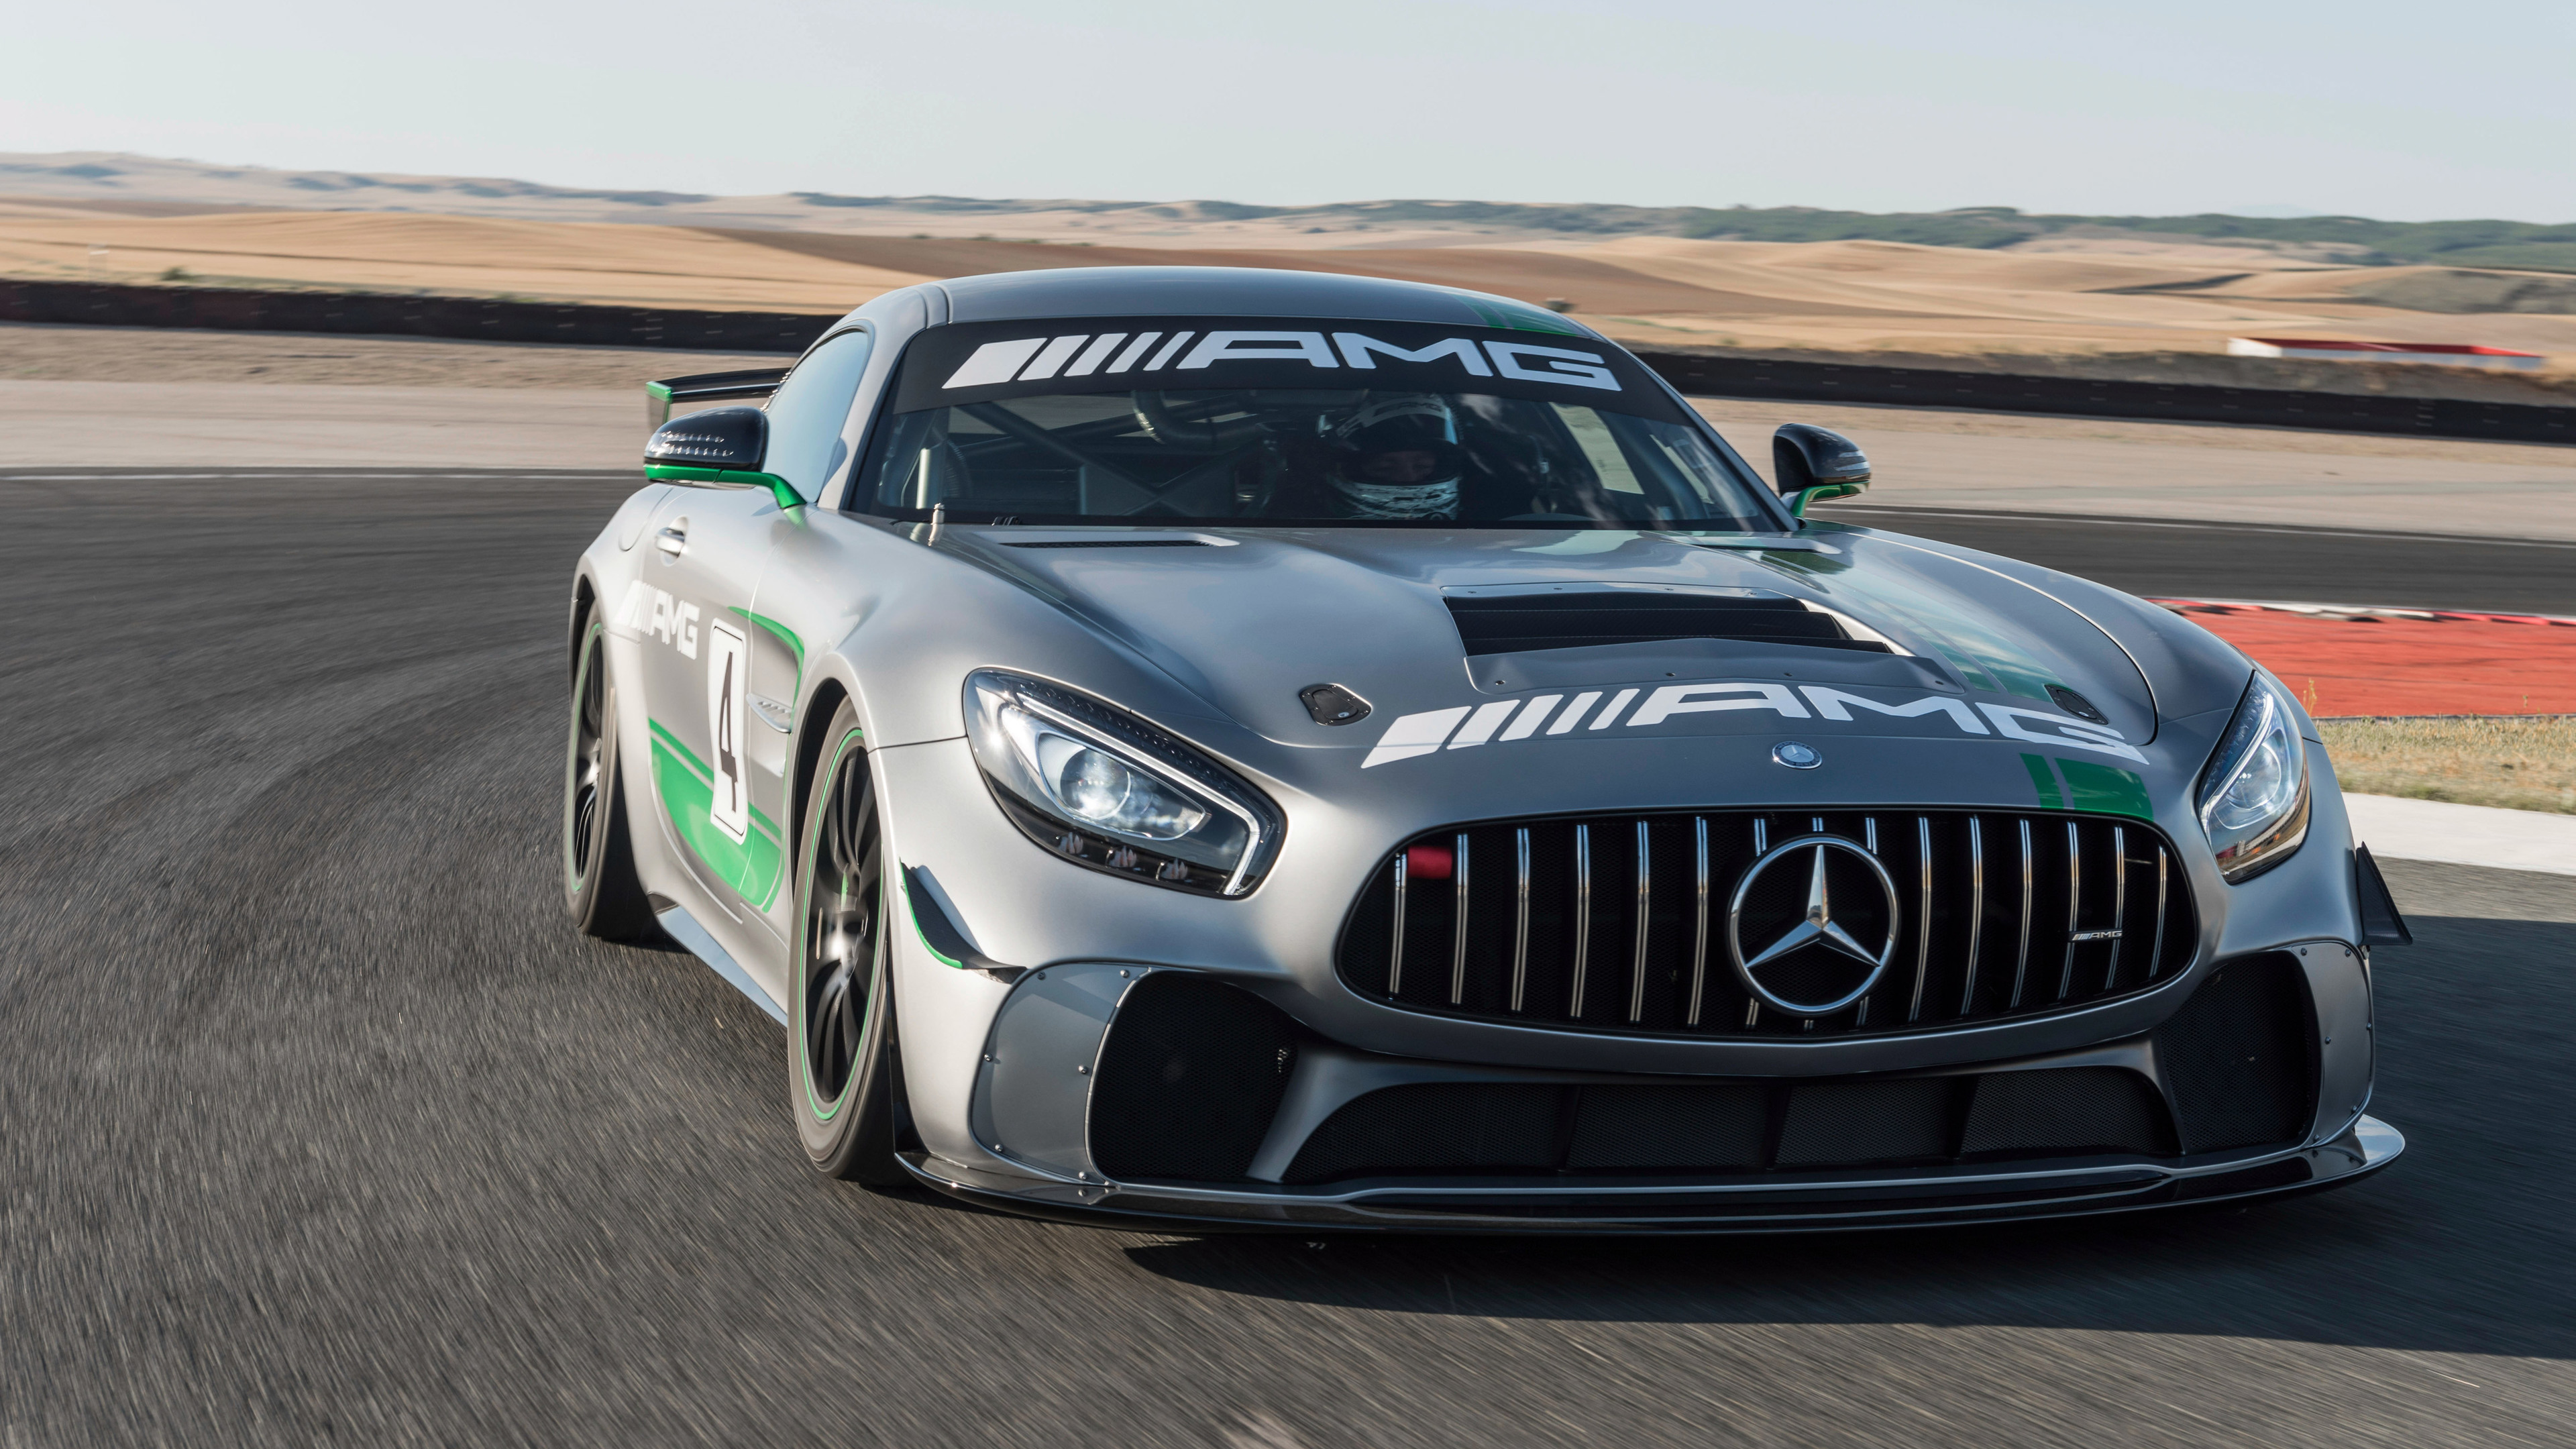 mercedes amg gt4 c190 2017 1539105942 - Mercedes AMG GT4 C190 2017 - mercedes wallpapers, mercedes amg wallpapers, mercedes amg gt4 c190 wallpapers, hd-wallpapers, cars wallpapers, 4k-wallpapers, 2017 cars wallpapers